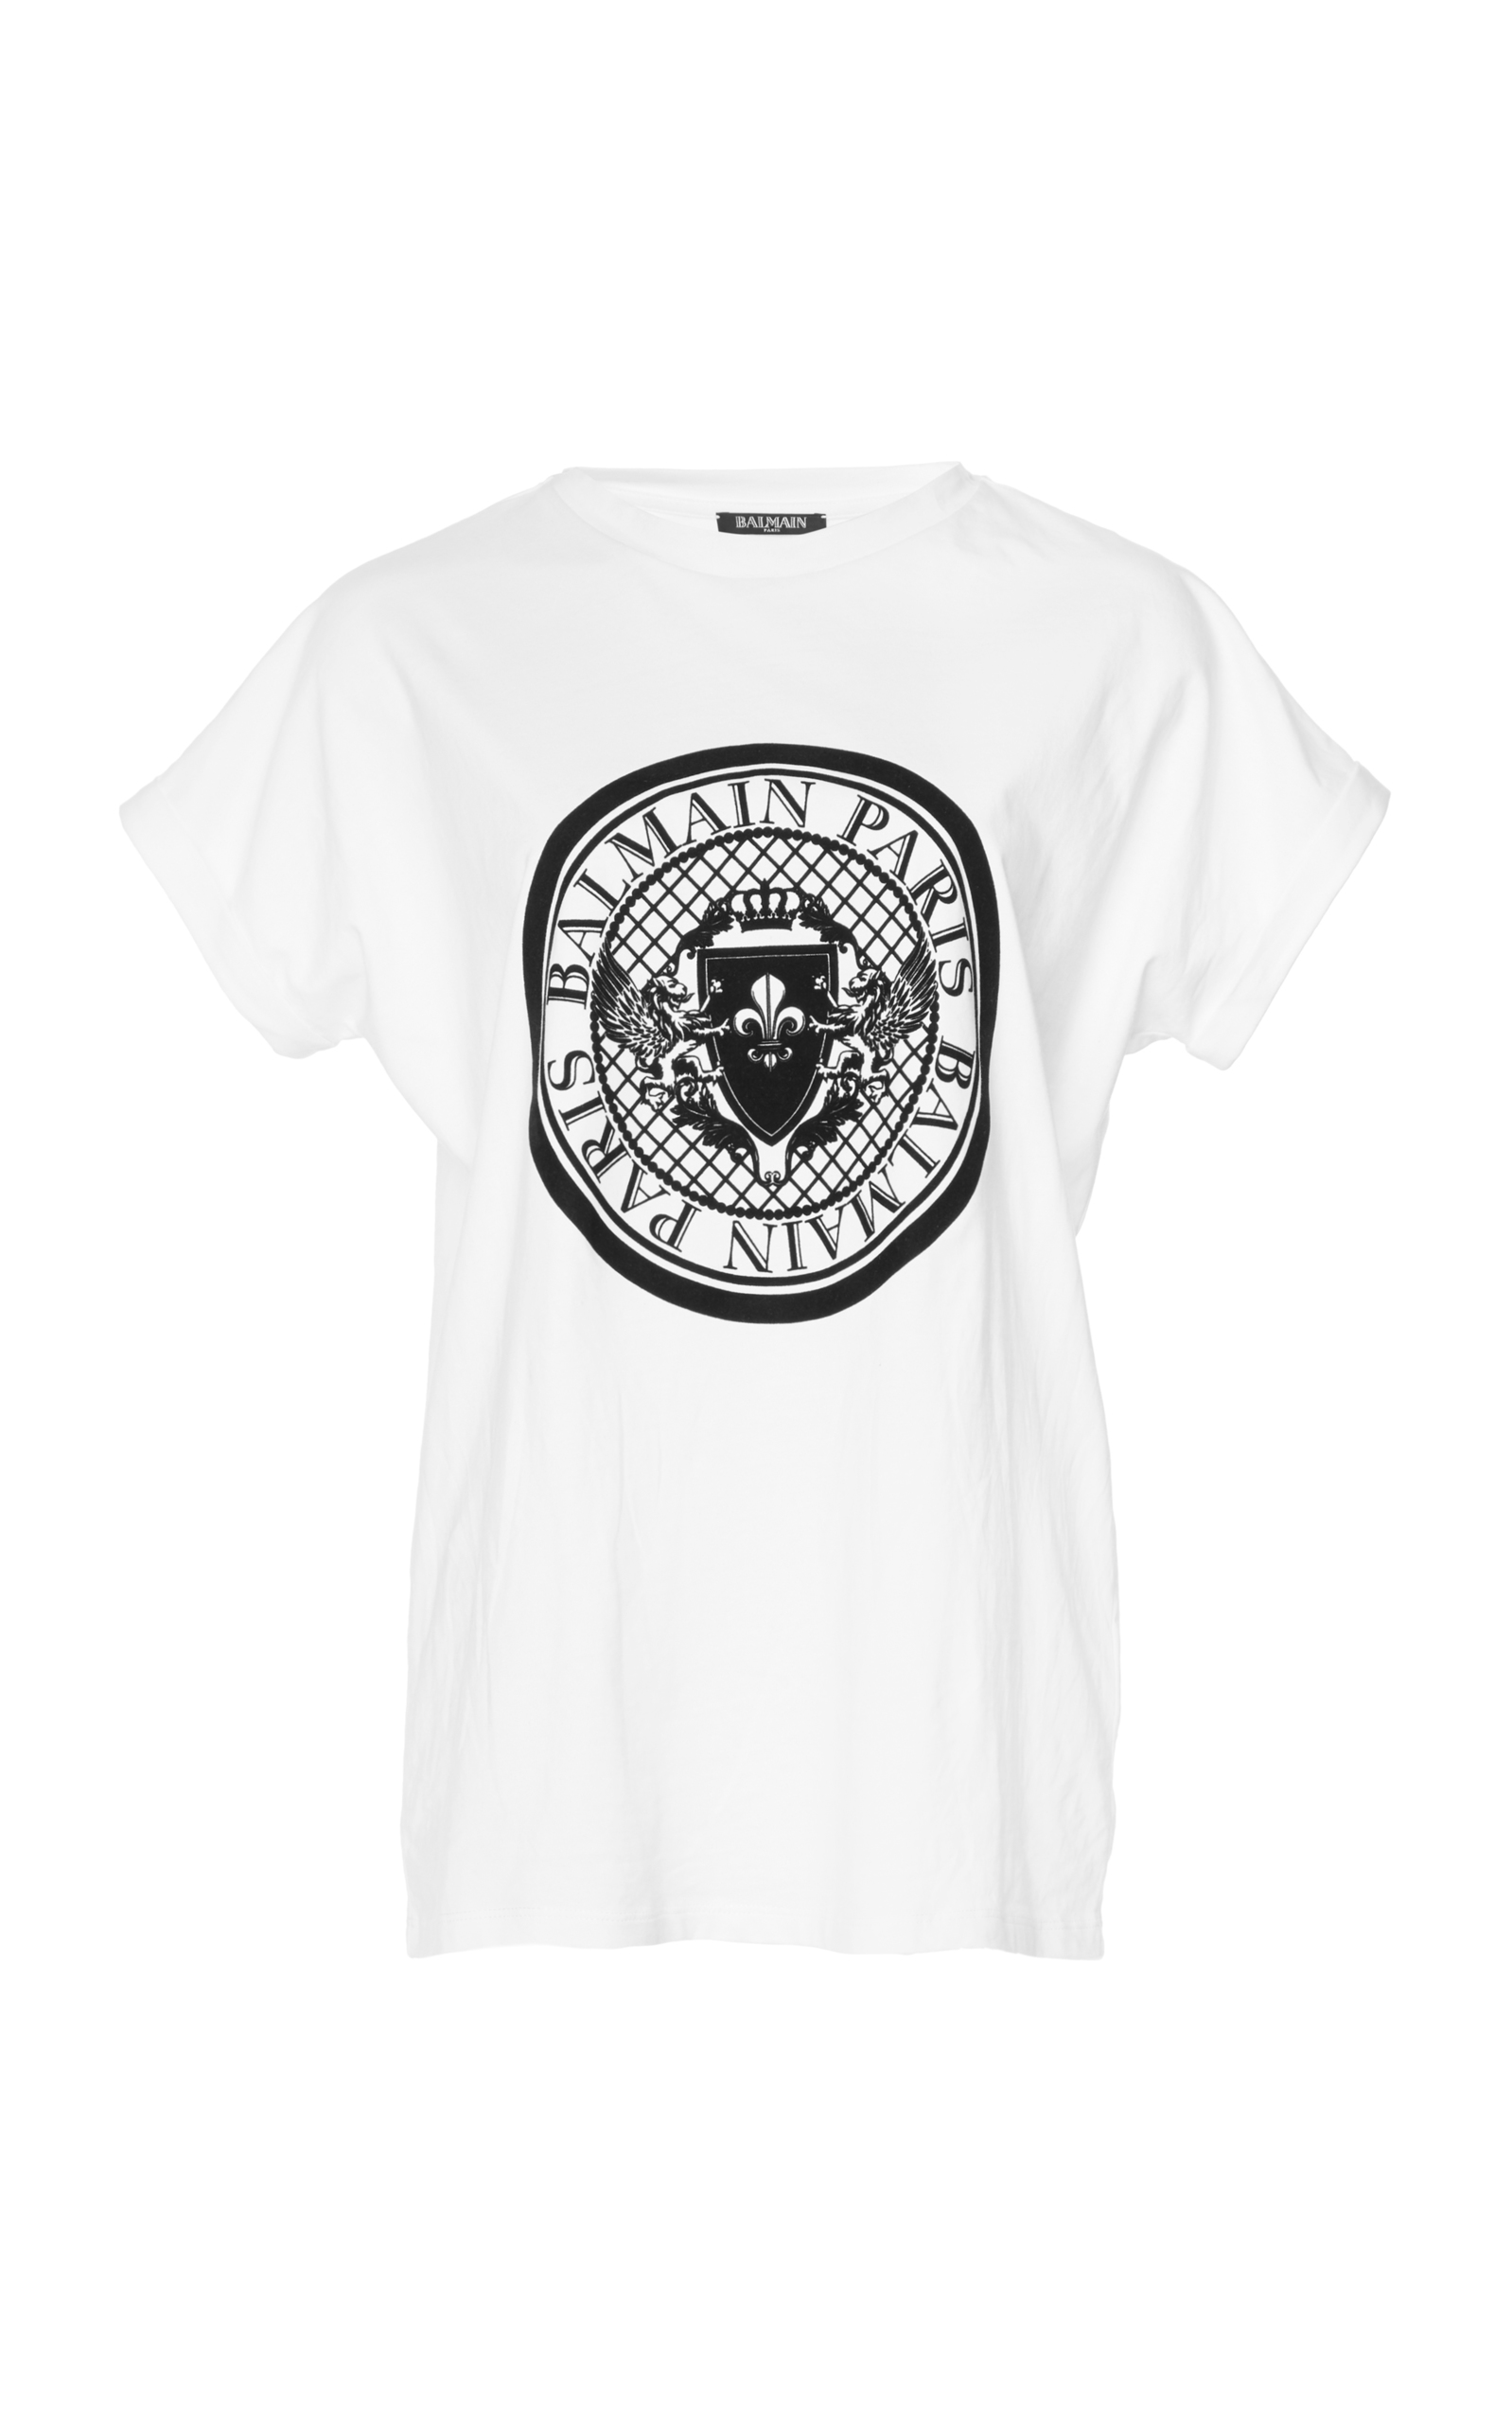 Discount 100% Authentic Balmain logo crest T-shirt Explore Outlet Inexpensive Under 50 Dollars Inexpensive For Sale Ir19D3hS